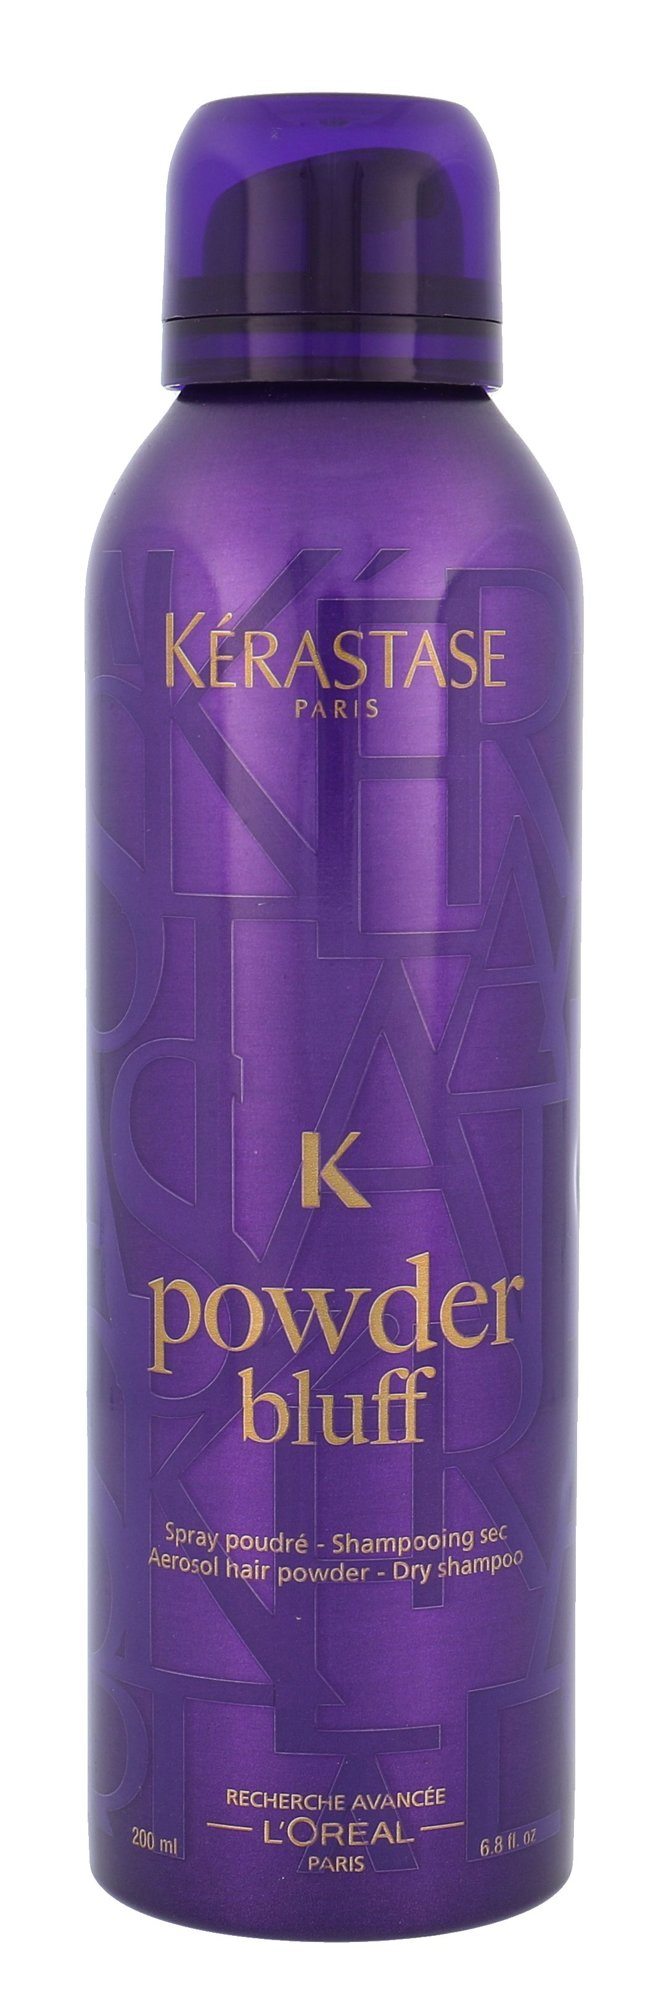 Kérastase K Powder Bluff Cosmetic 200ml